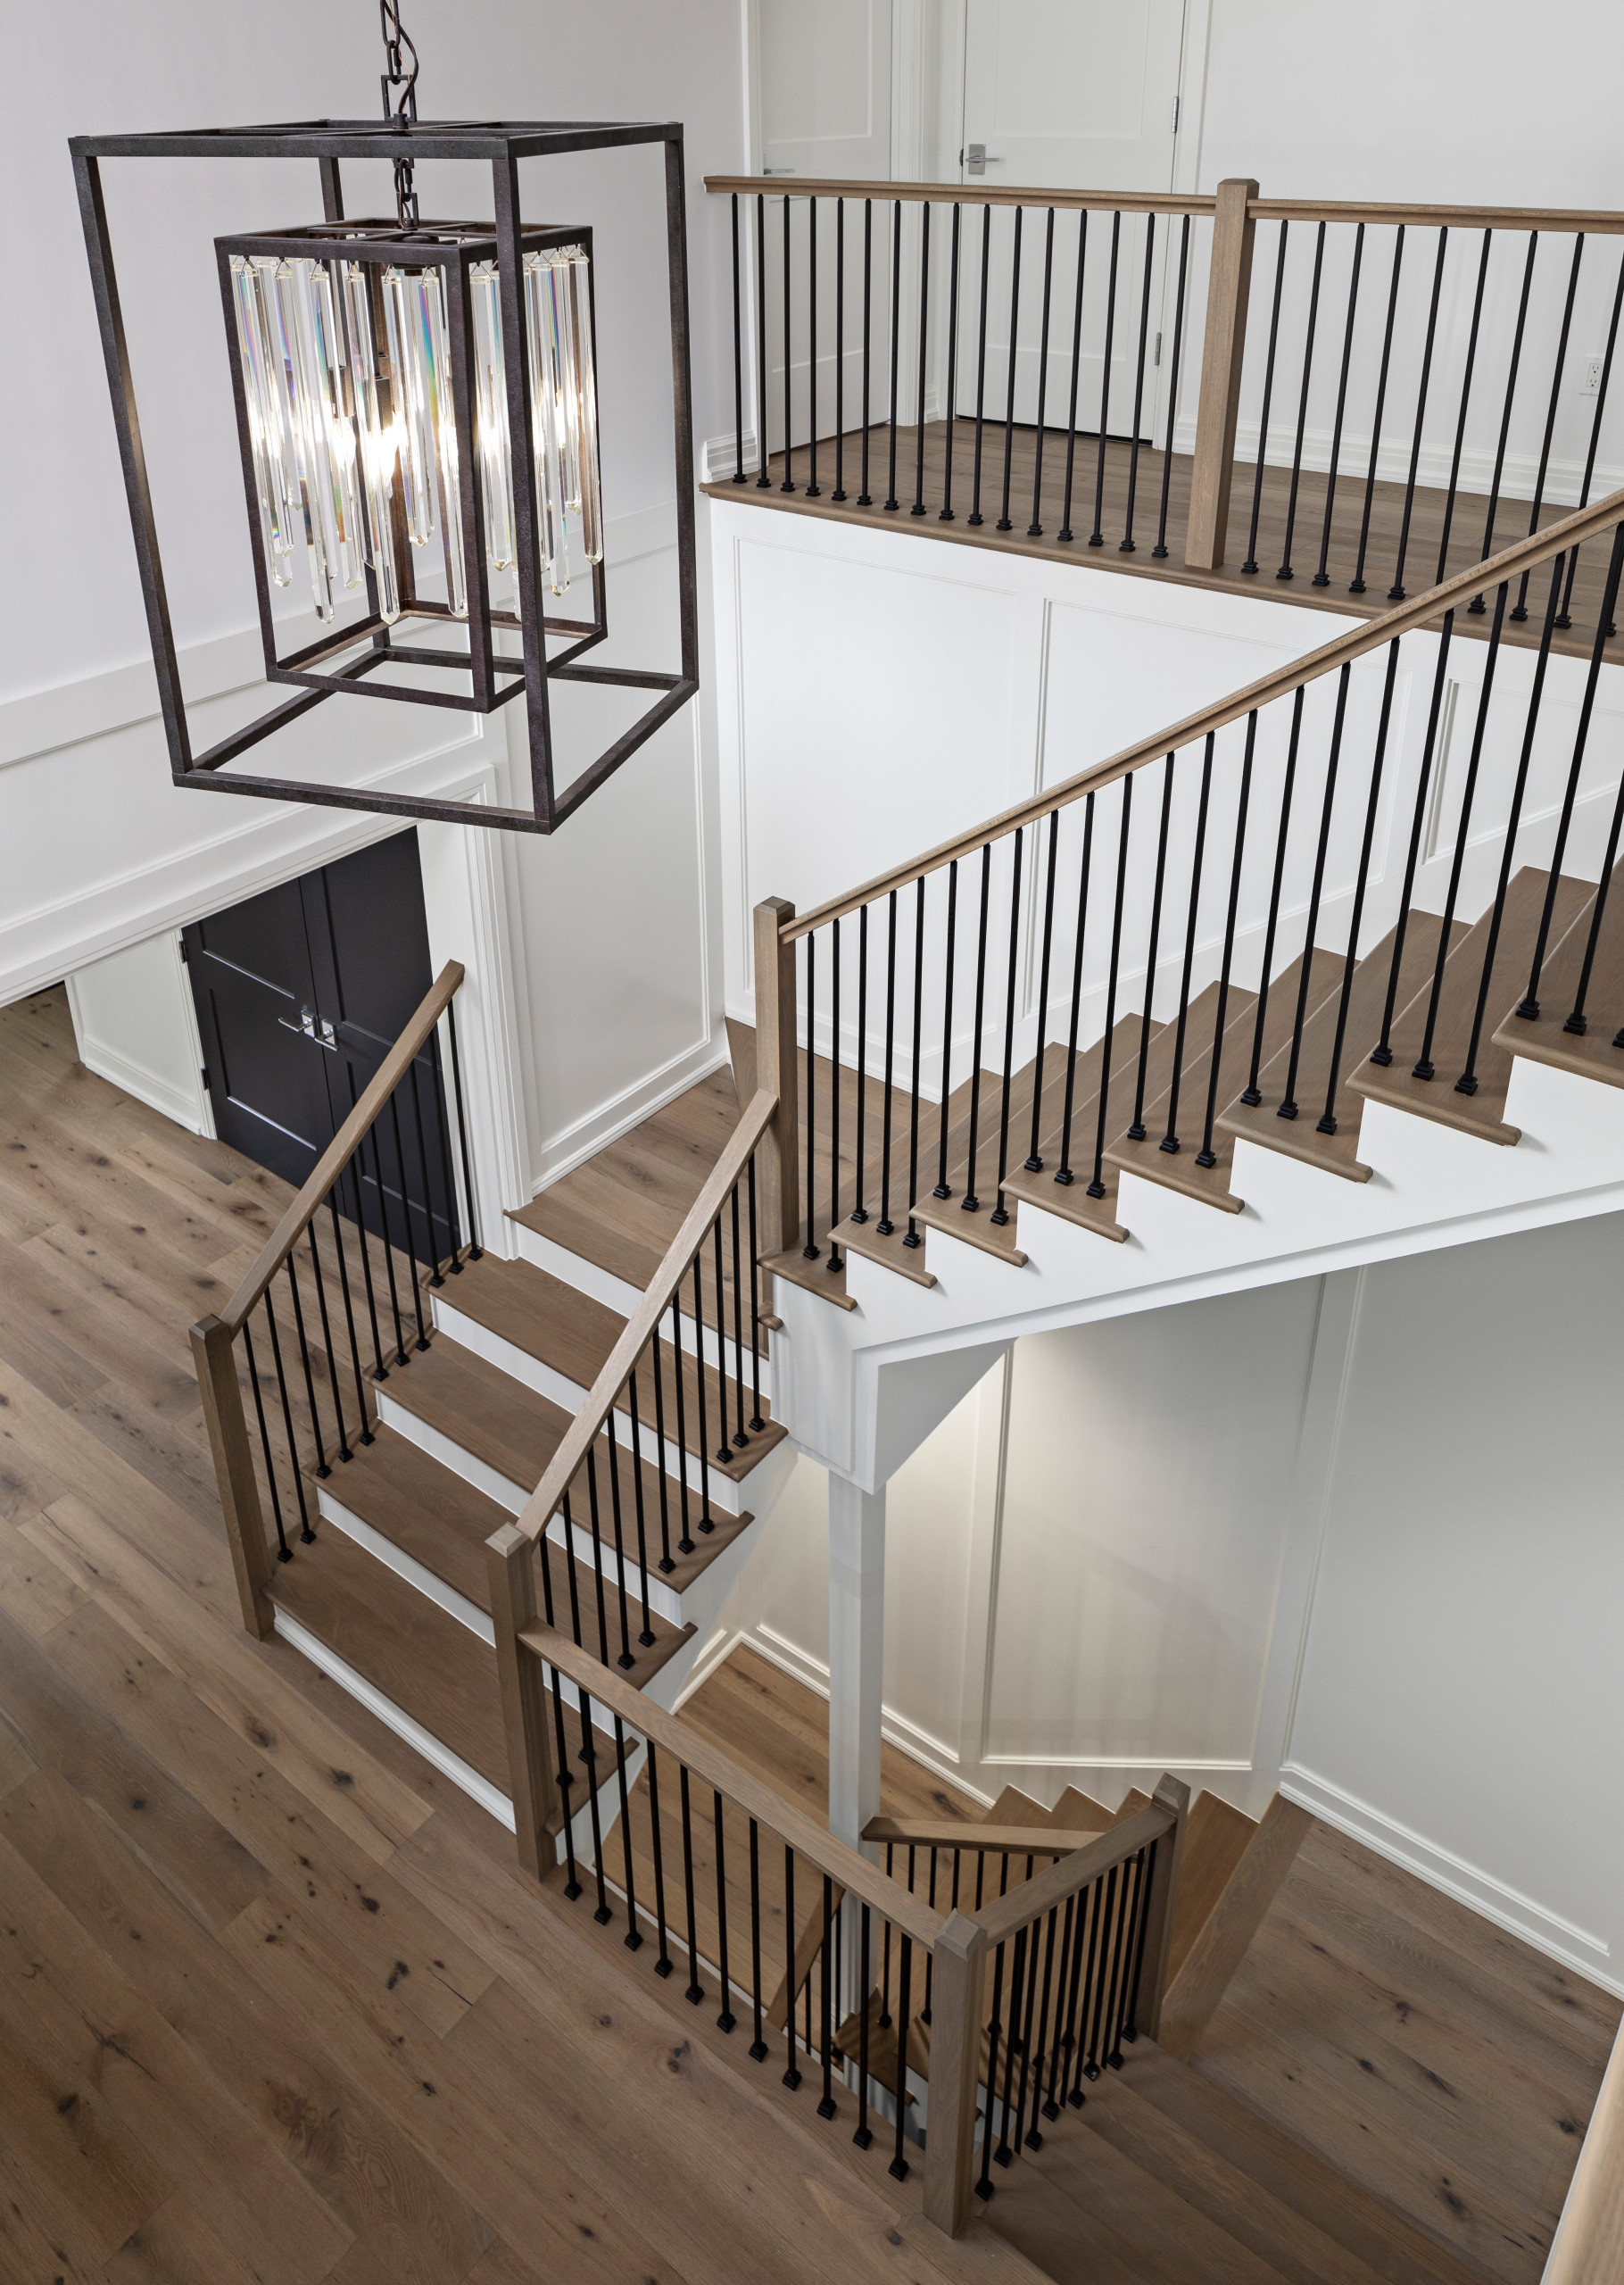 A staircase is so much more than circulation. It provides a space to create dramatic interior architecture, a place for design to carve into, where a staircase can either embrace or stand as its own d